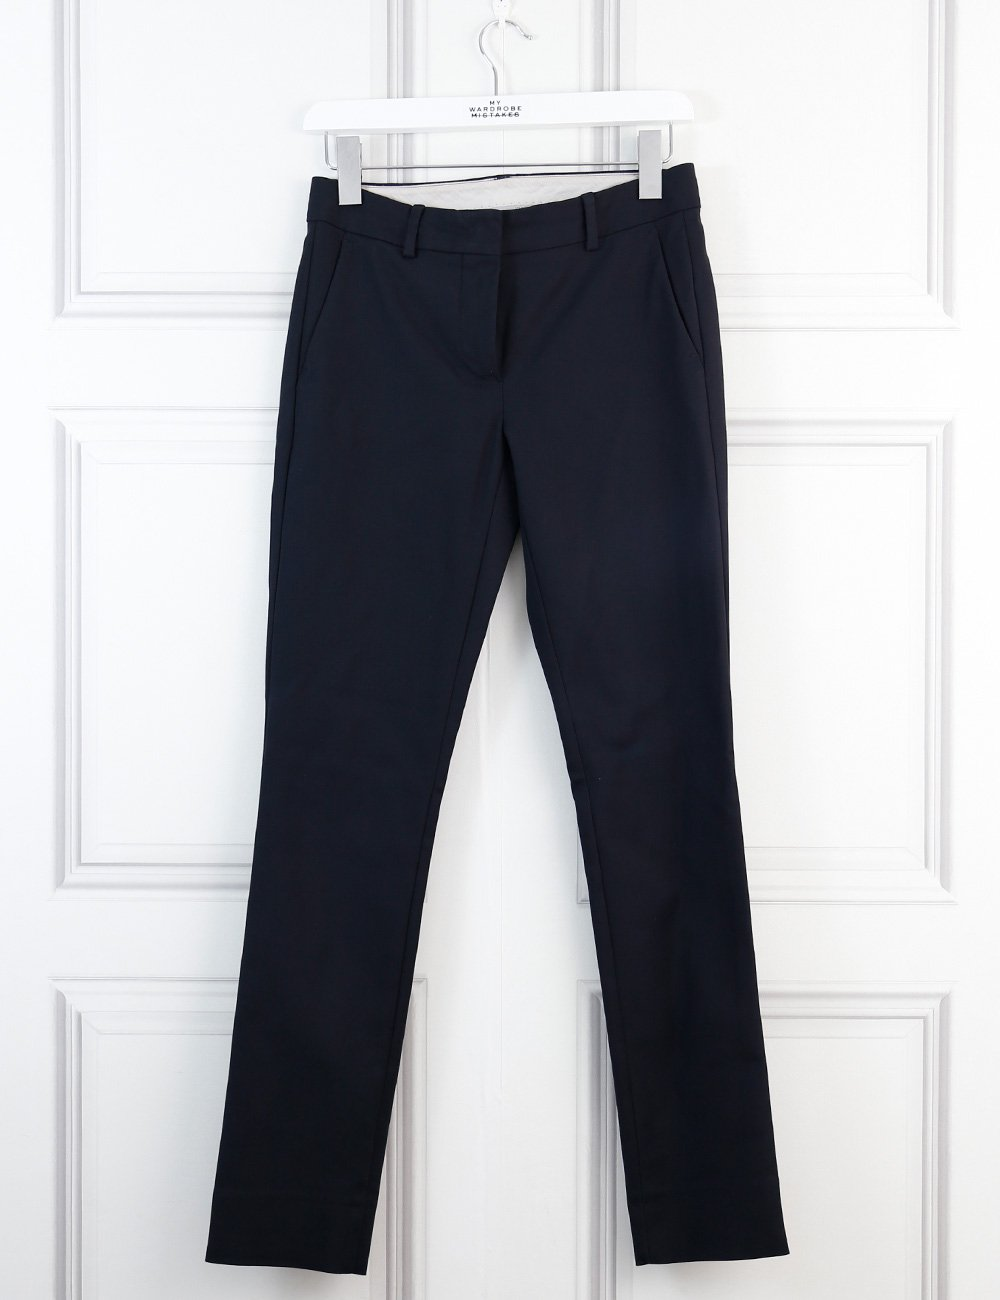 Sportmax black tailored trousers with side pockets 6Uk